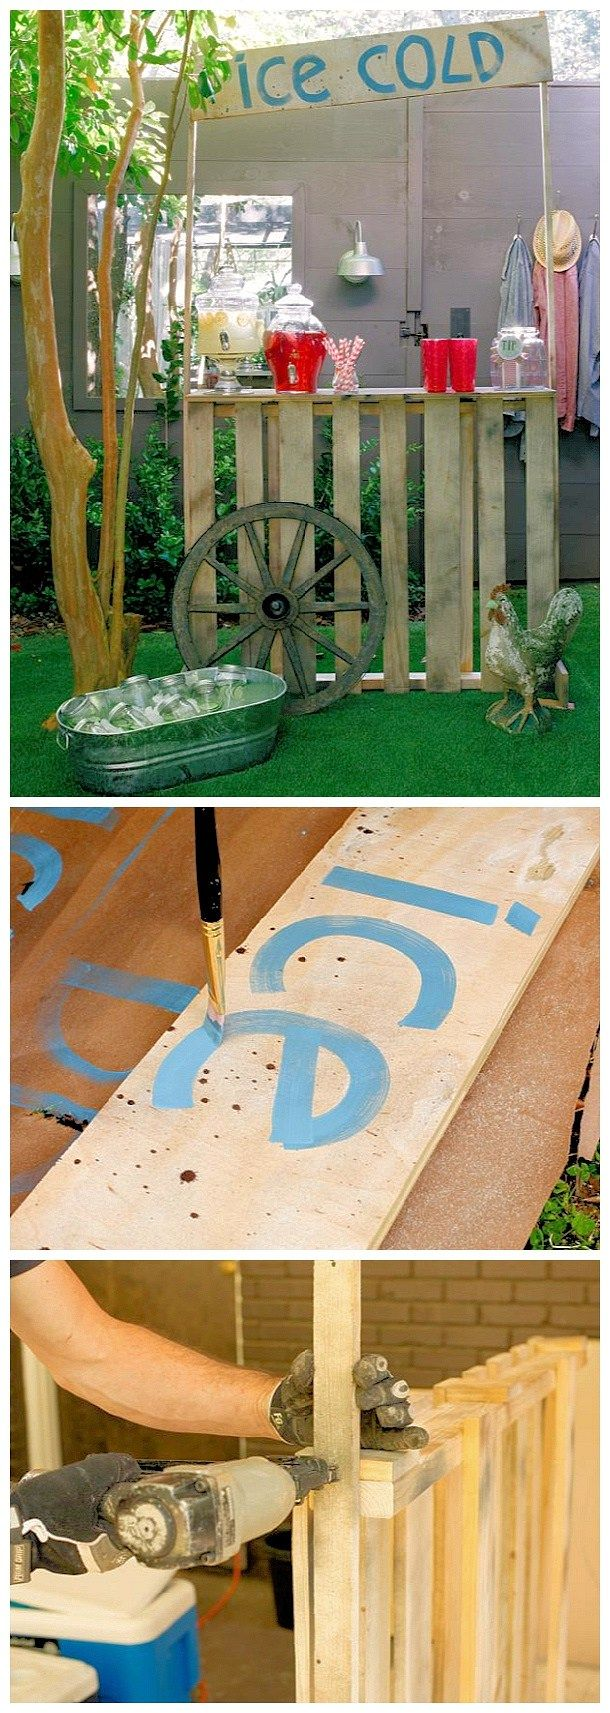 Diy pallet projects the best reclaimed wood upcycle ideas do it yourself pallet projects diy lemonade stand made from upcycled shipping pallets woodworking upcycle tutorial via diy network solutioingenieria Images